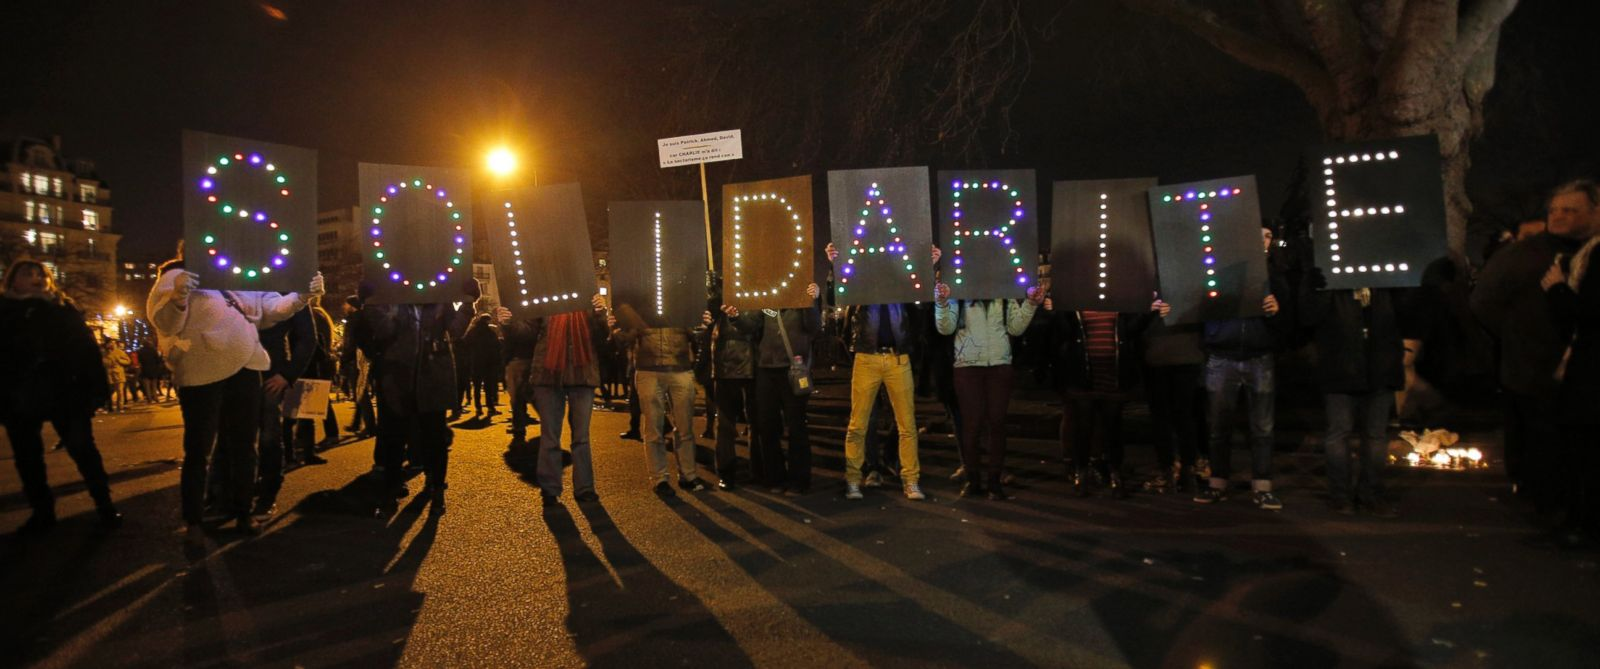 """PHOTO: People hold up a sign reading """"Solidarity"""" during a rally in Paris, France, Sunday, Jan. 11, 2015."""